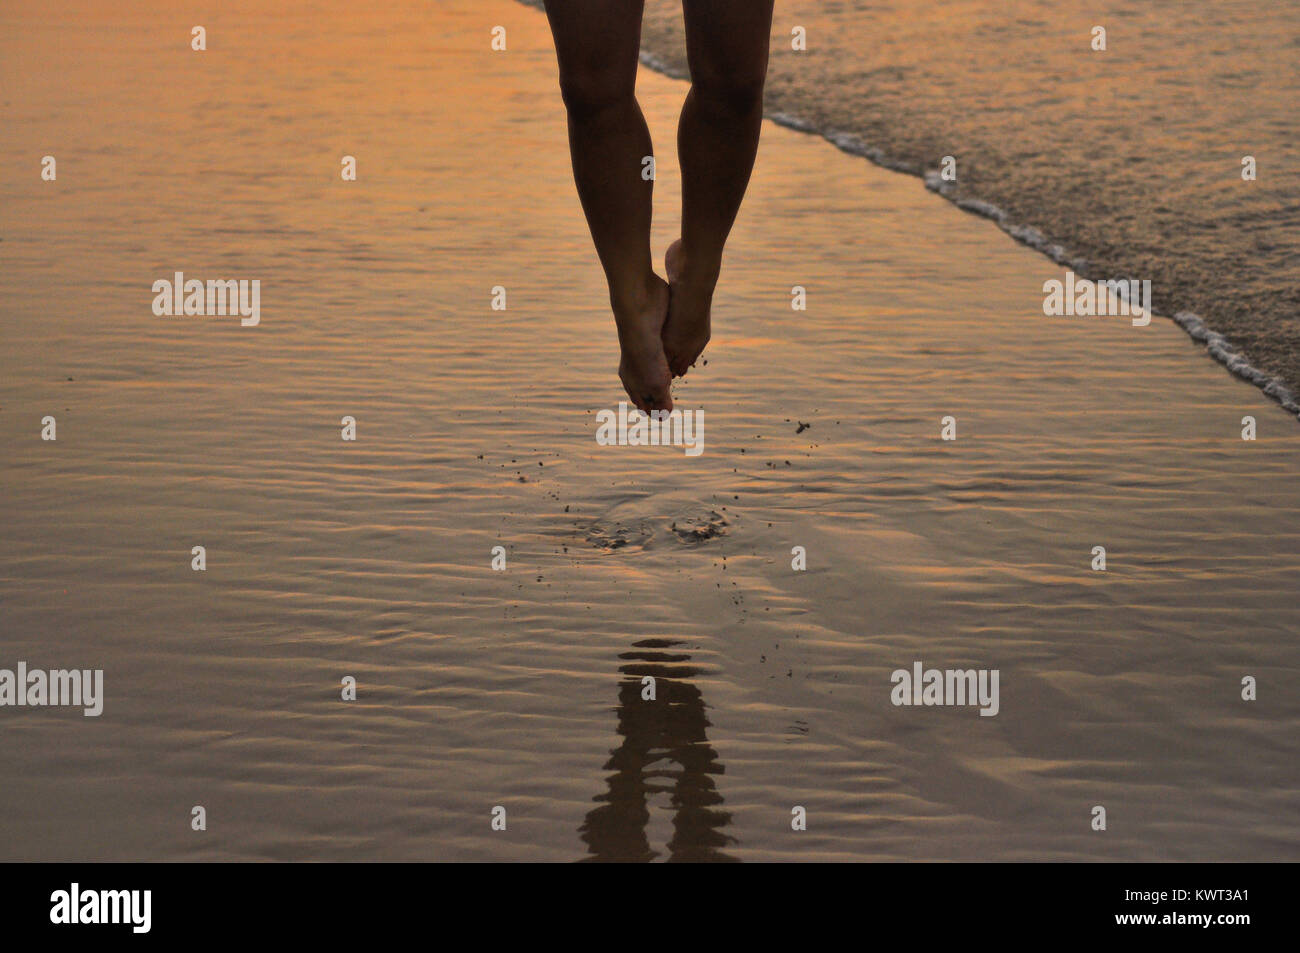 Lower body of a woman jumping on the sand - Stock Image